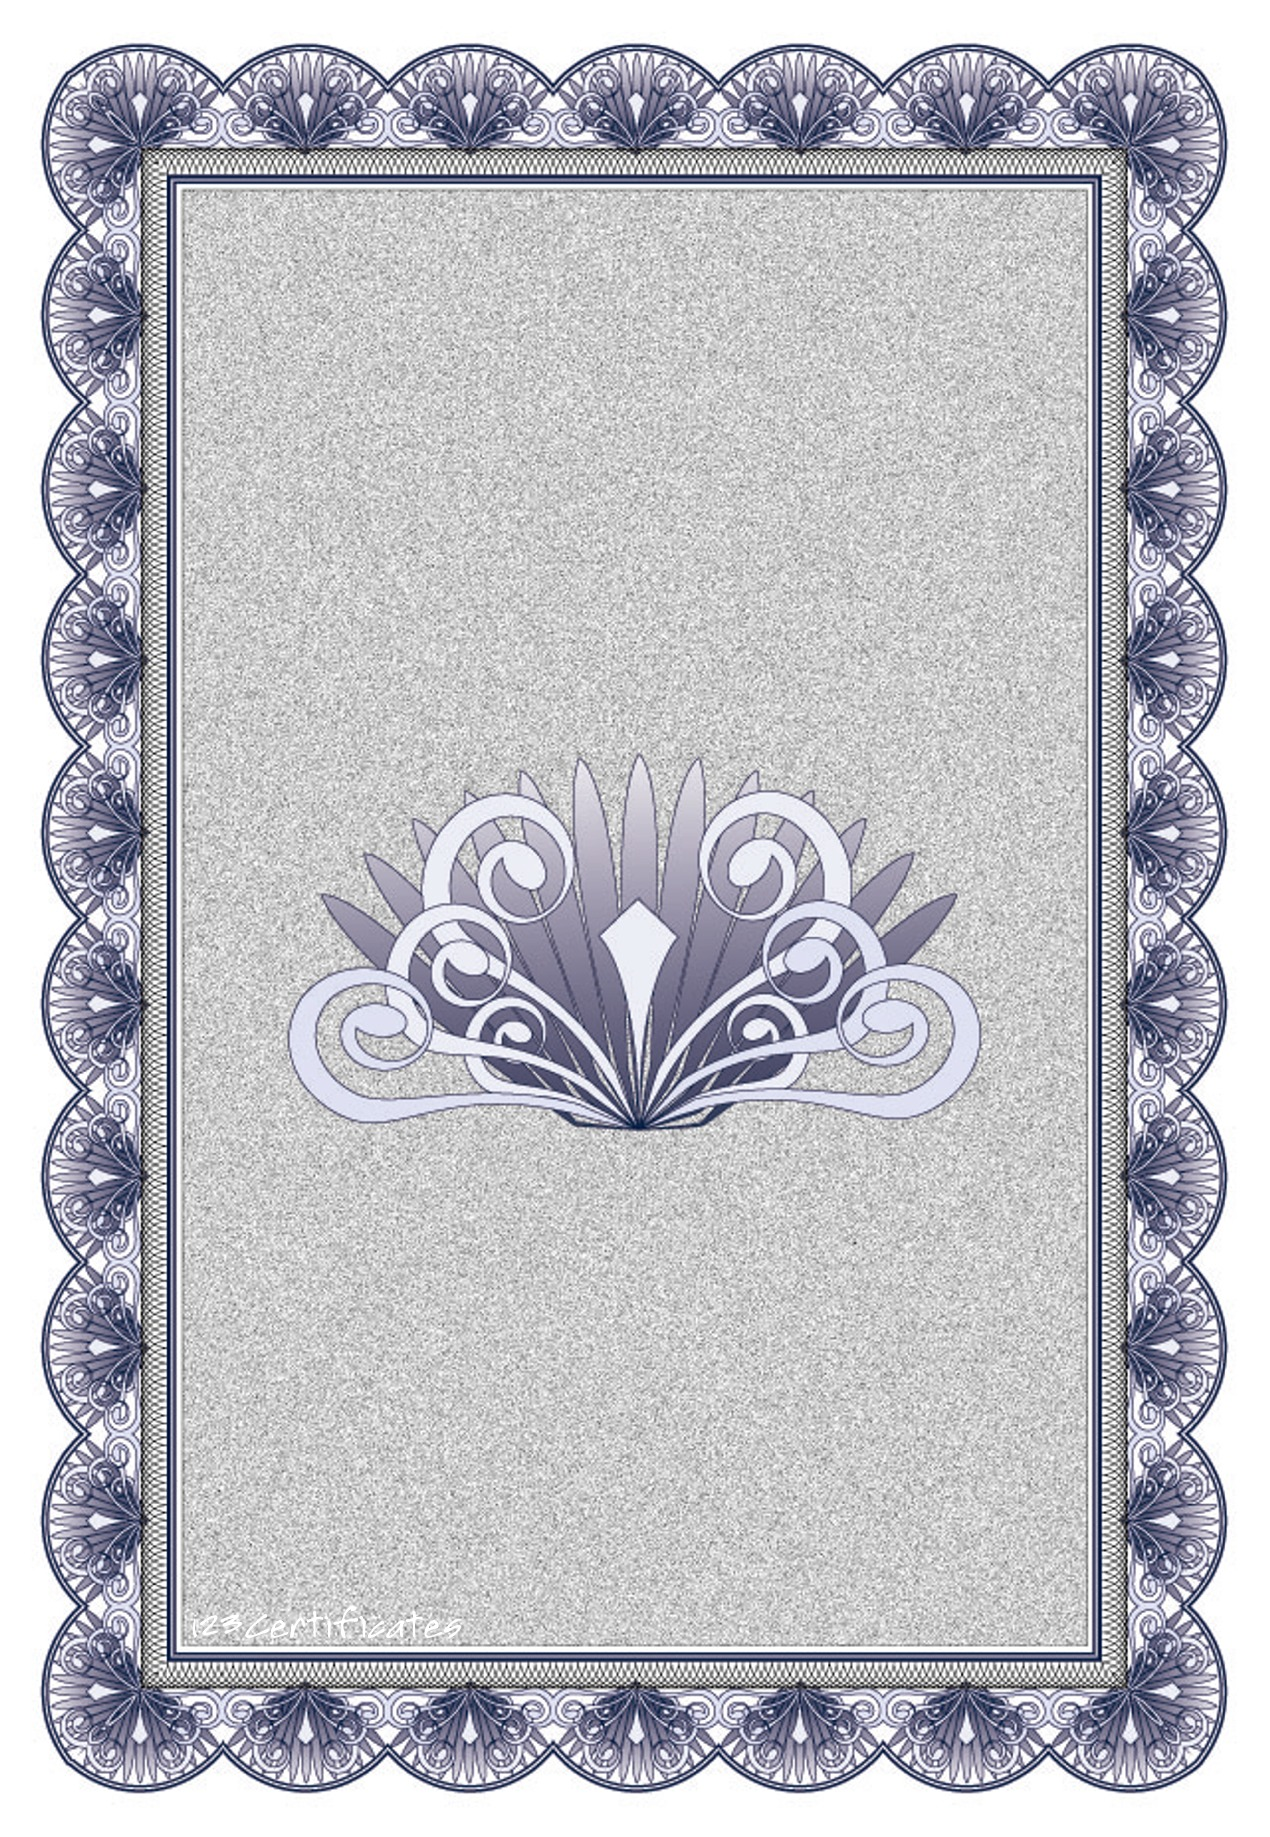 Blue Ornate Edge Border - 123 Certificates